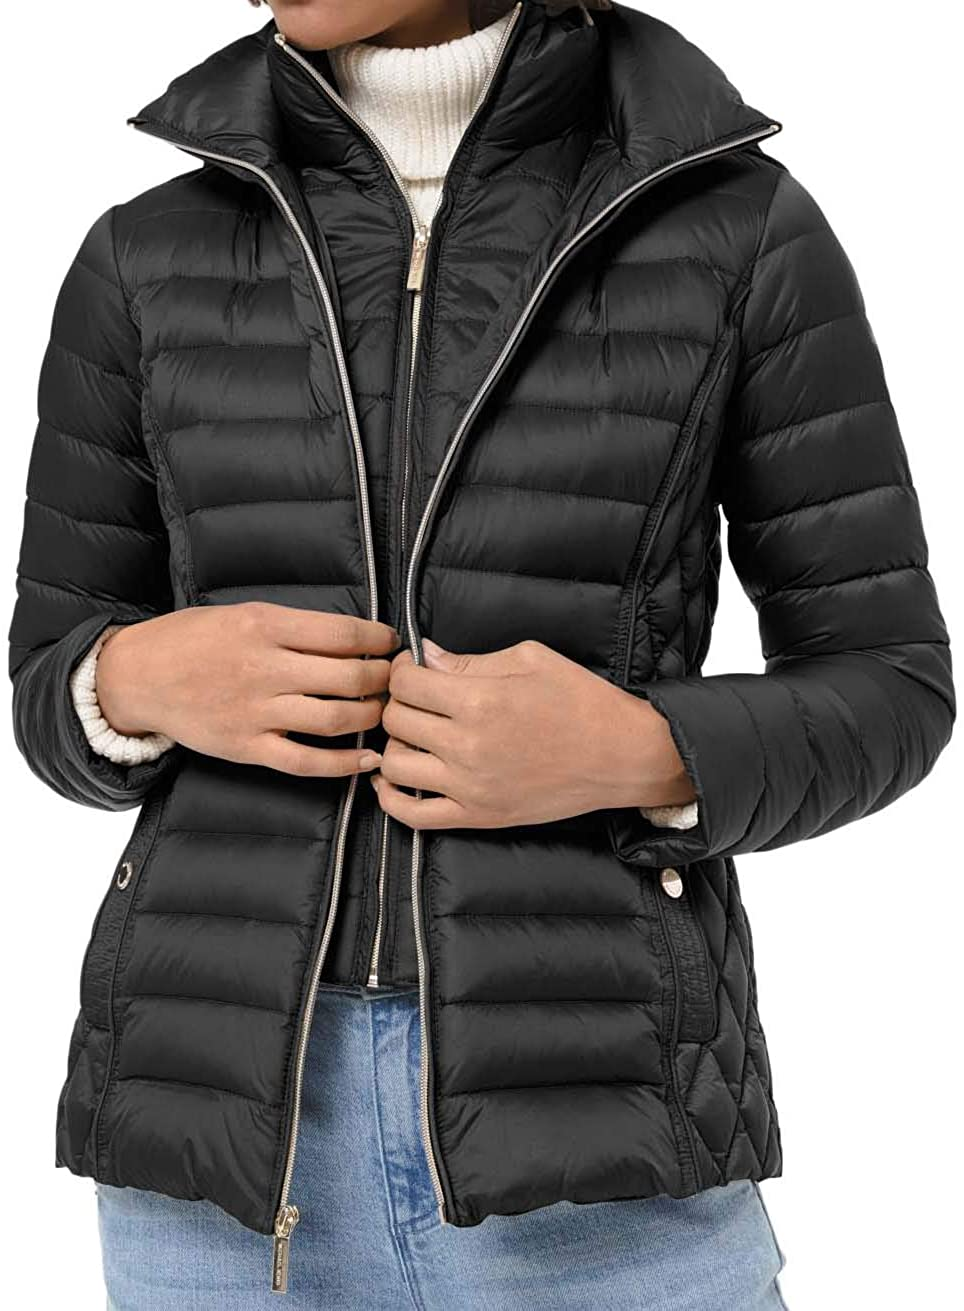 Michael Michael Kors Quilted Nylon Packable Puffer Jacket - Black